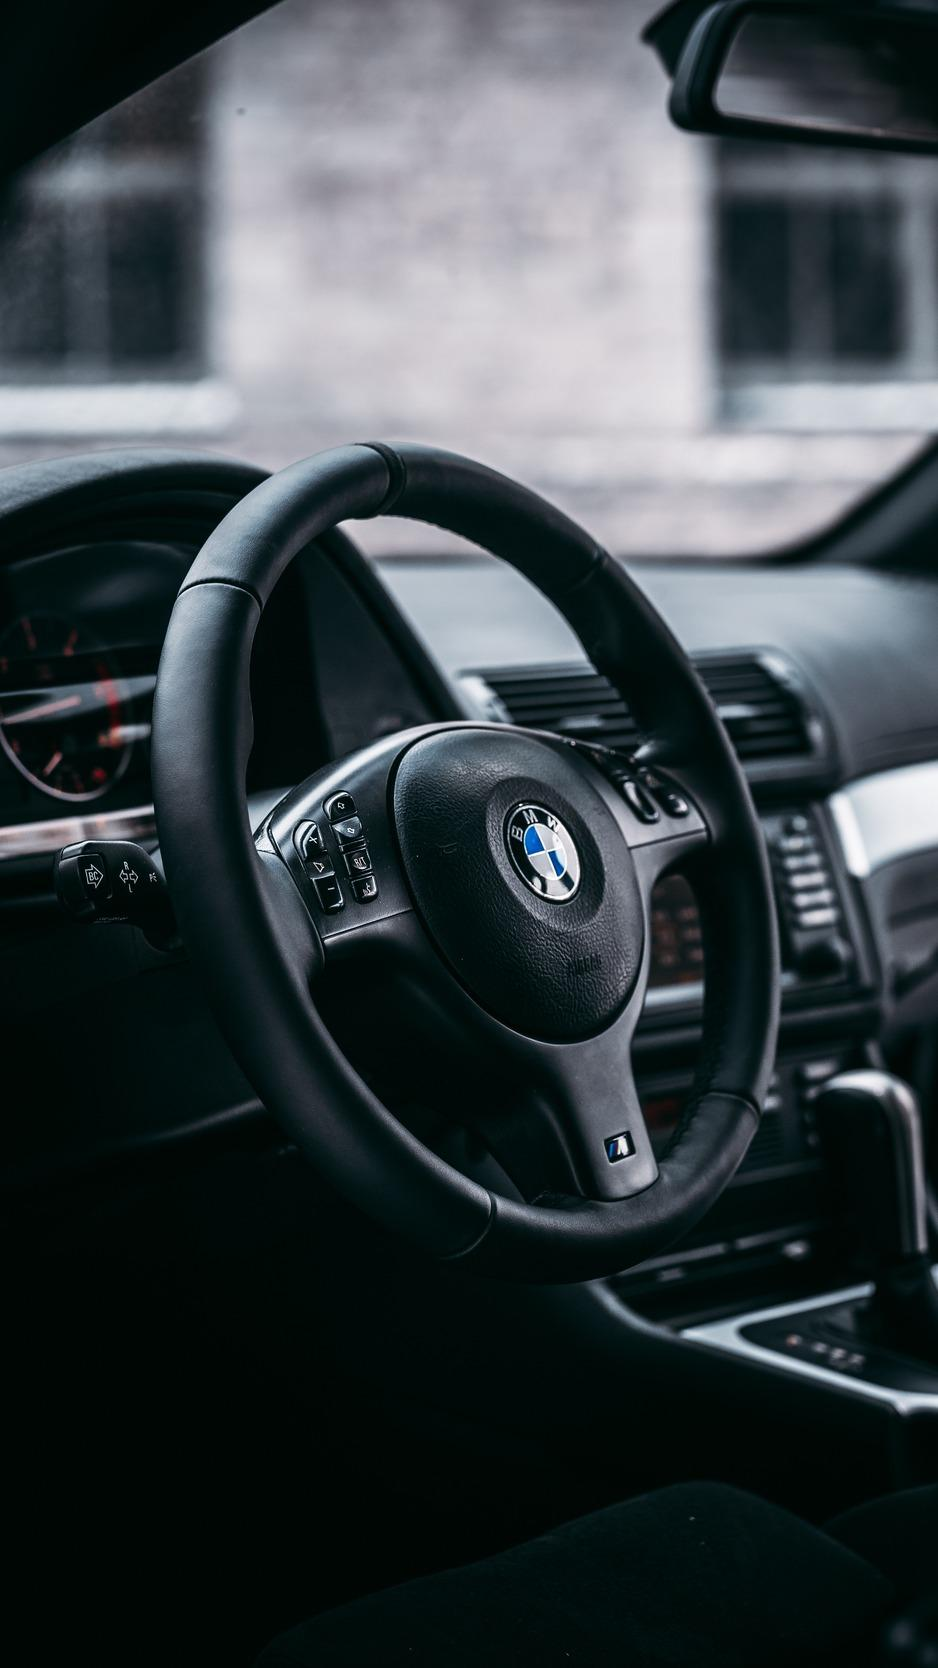 Download wallpapers 938x1668 bmw, steering wheel, car, car interior